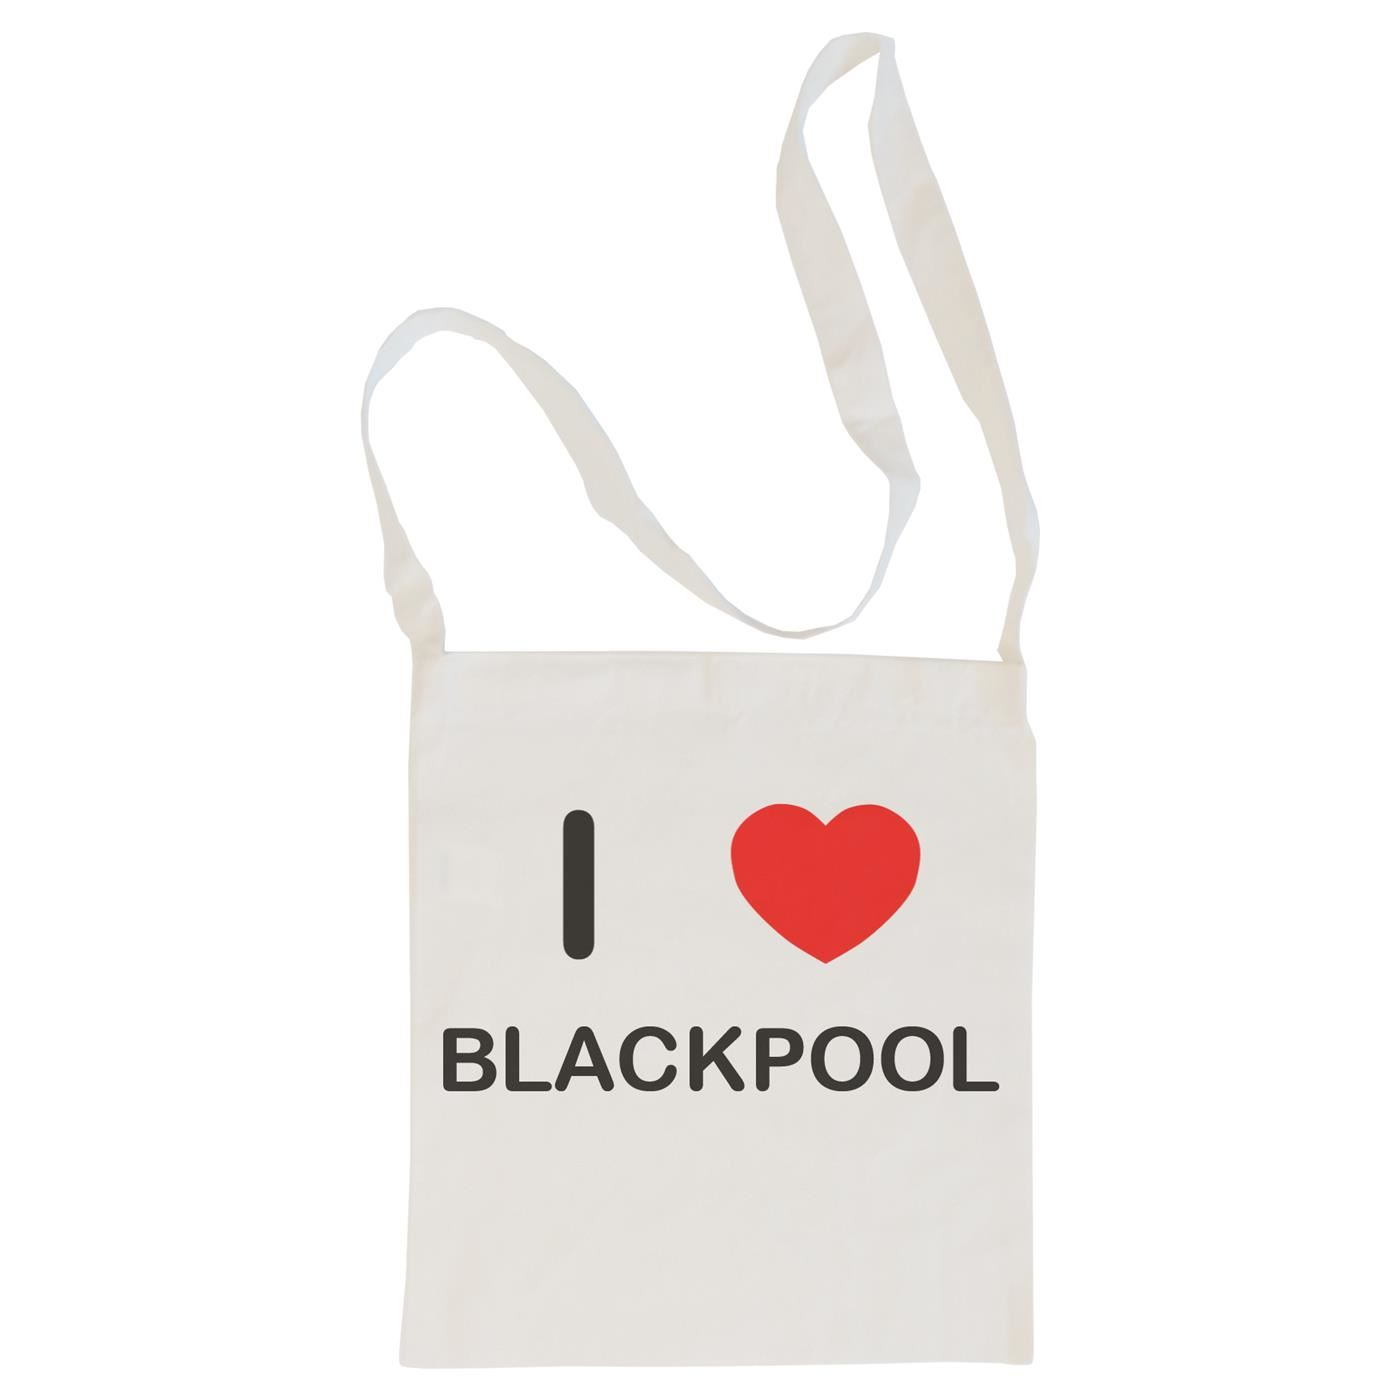 I Love Blackpool - Cotton Bag | Size choice Tote, Shopper or Sling